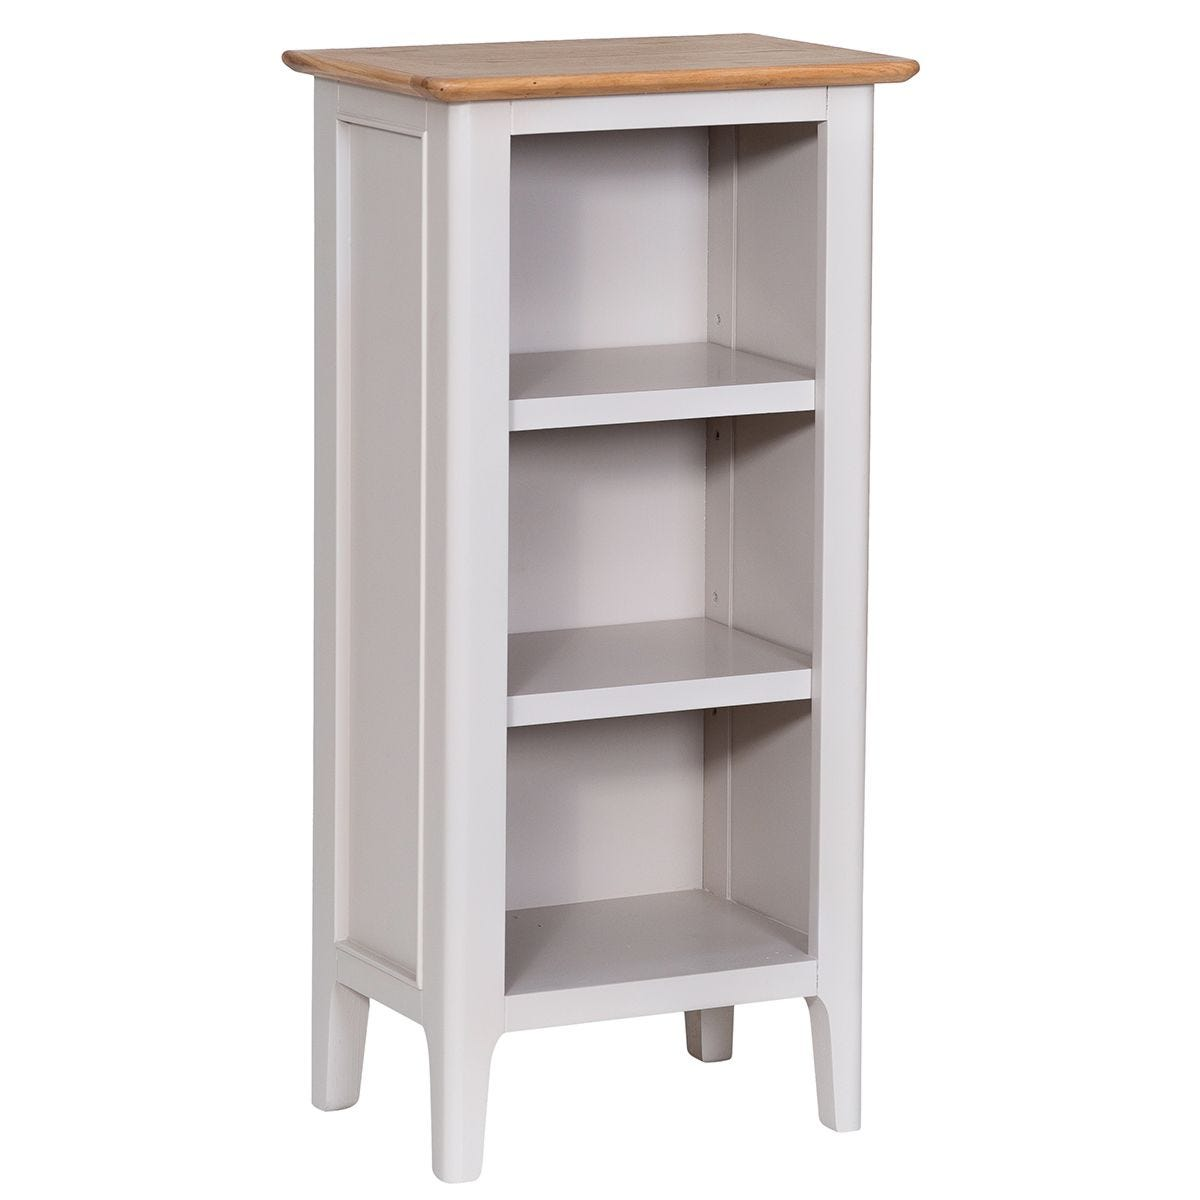 Notswood Narrow Wooden Bookcase